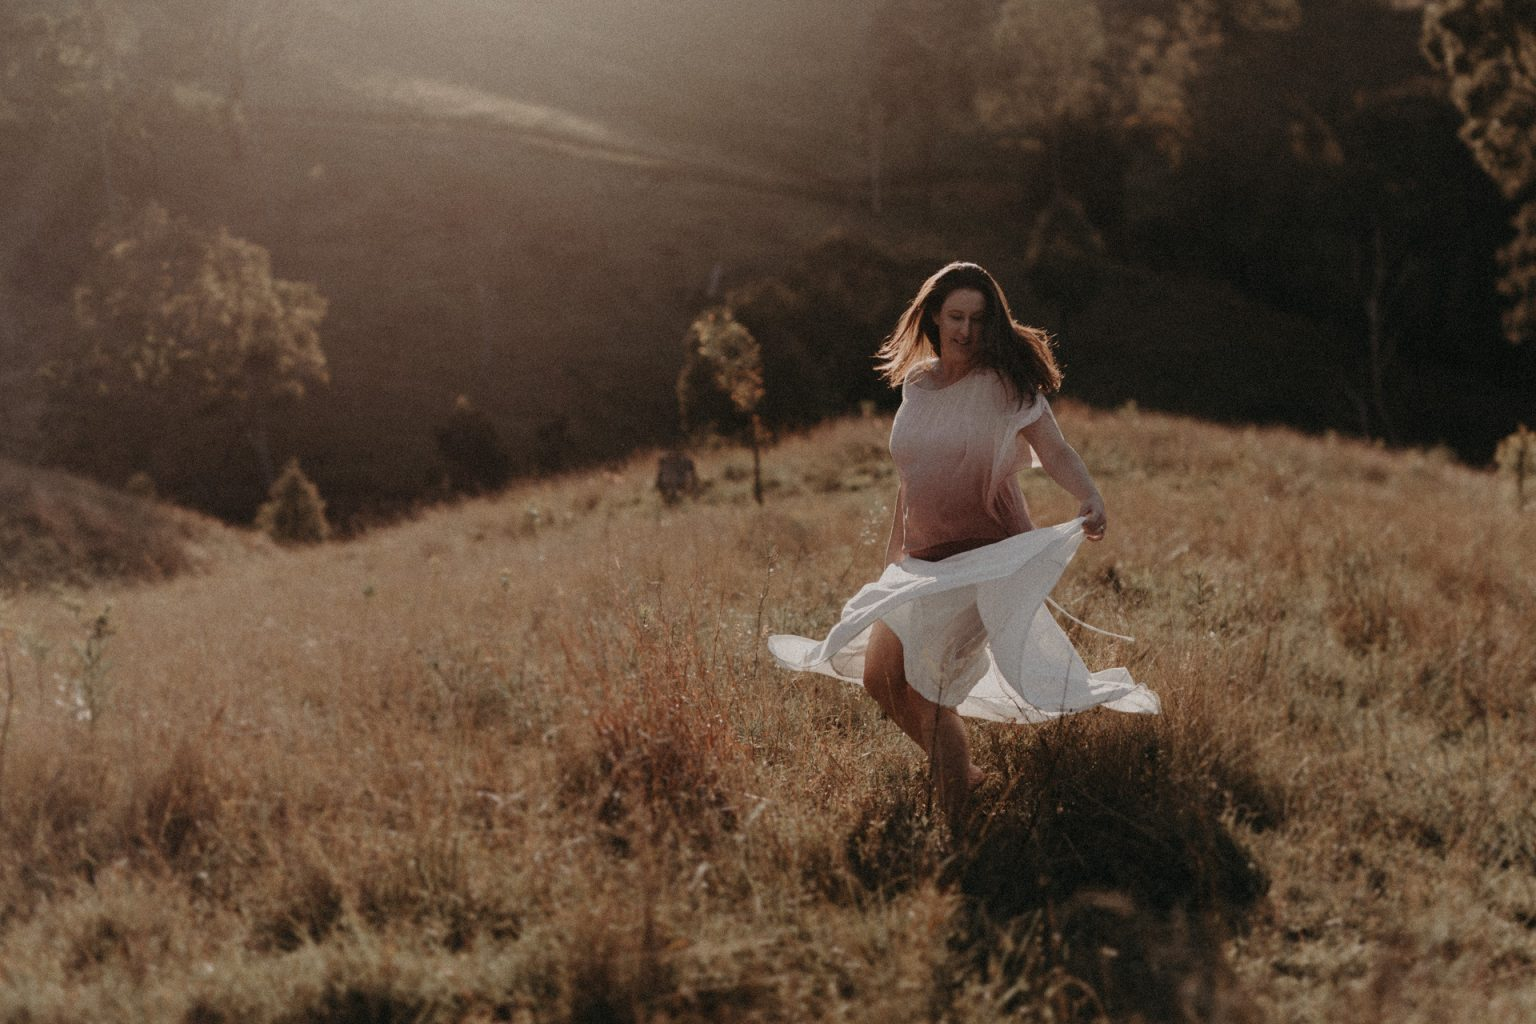 woman running in field with white skirt long grass